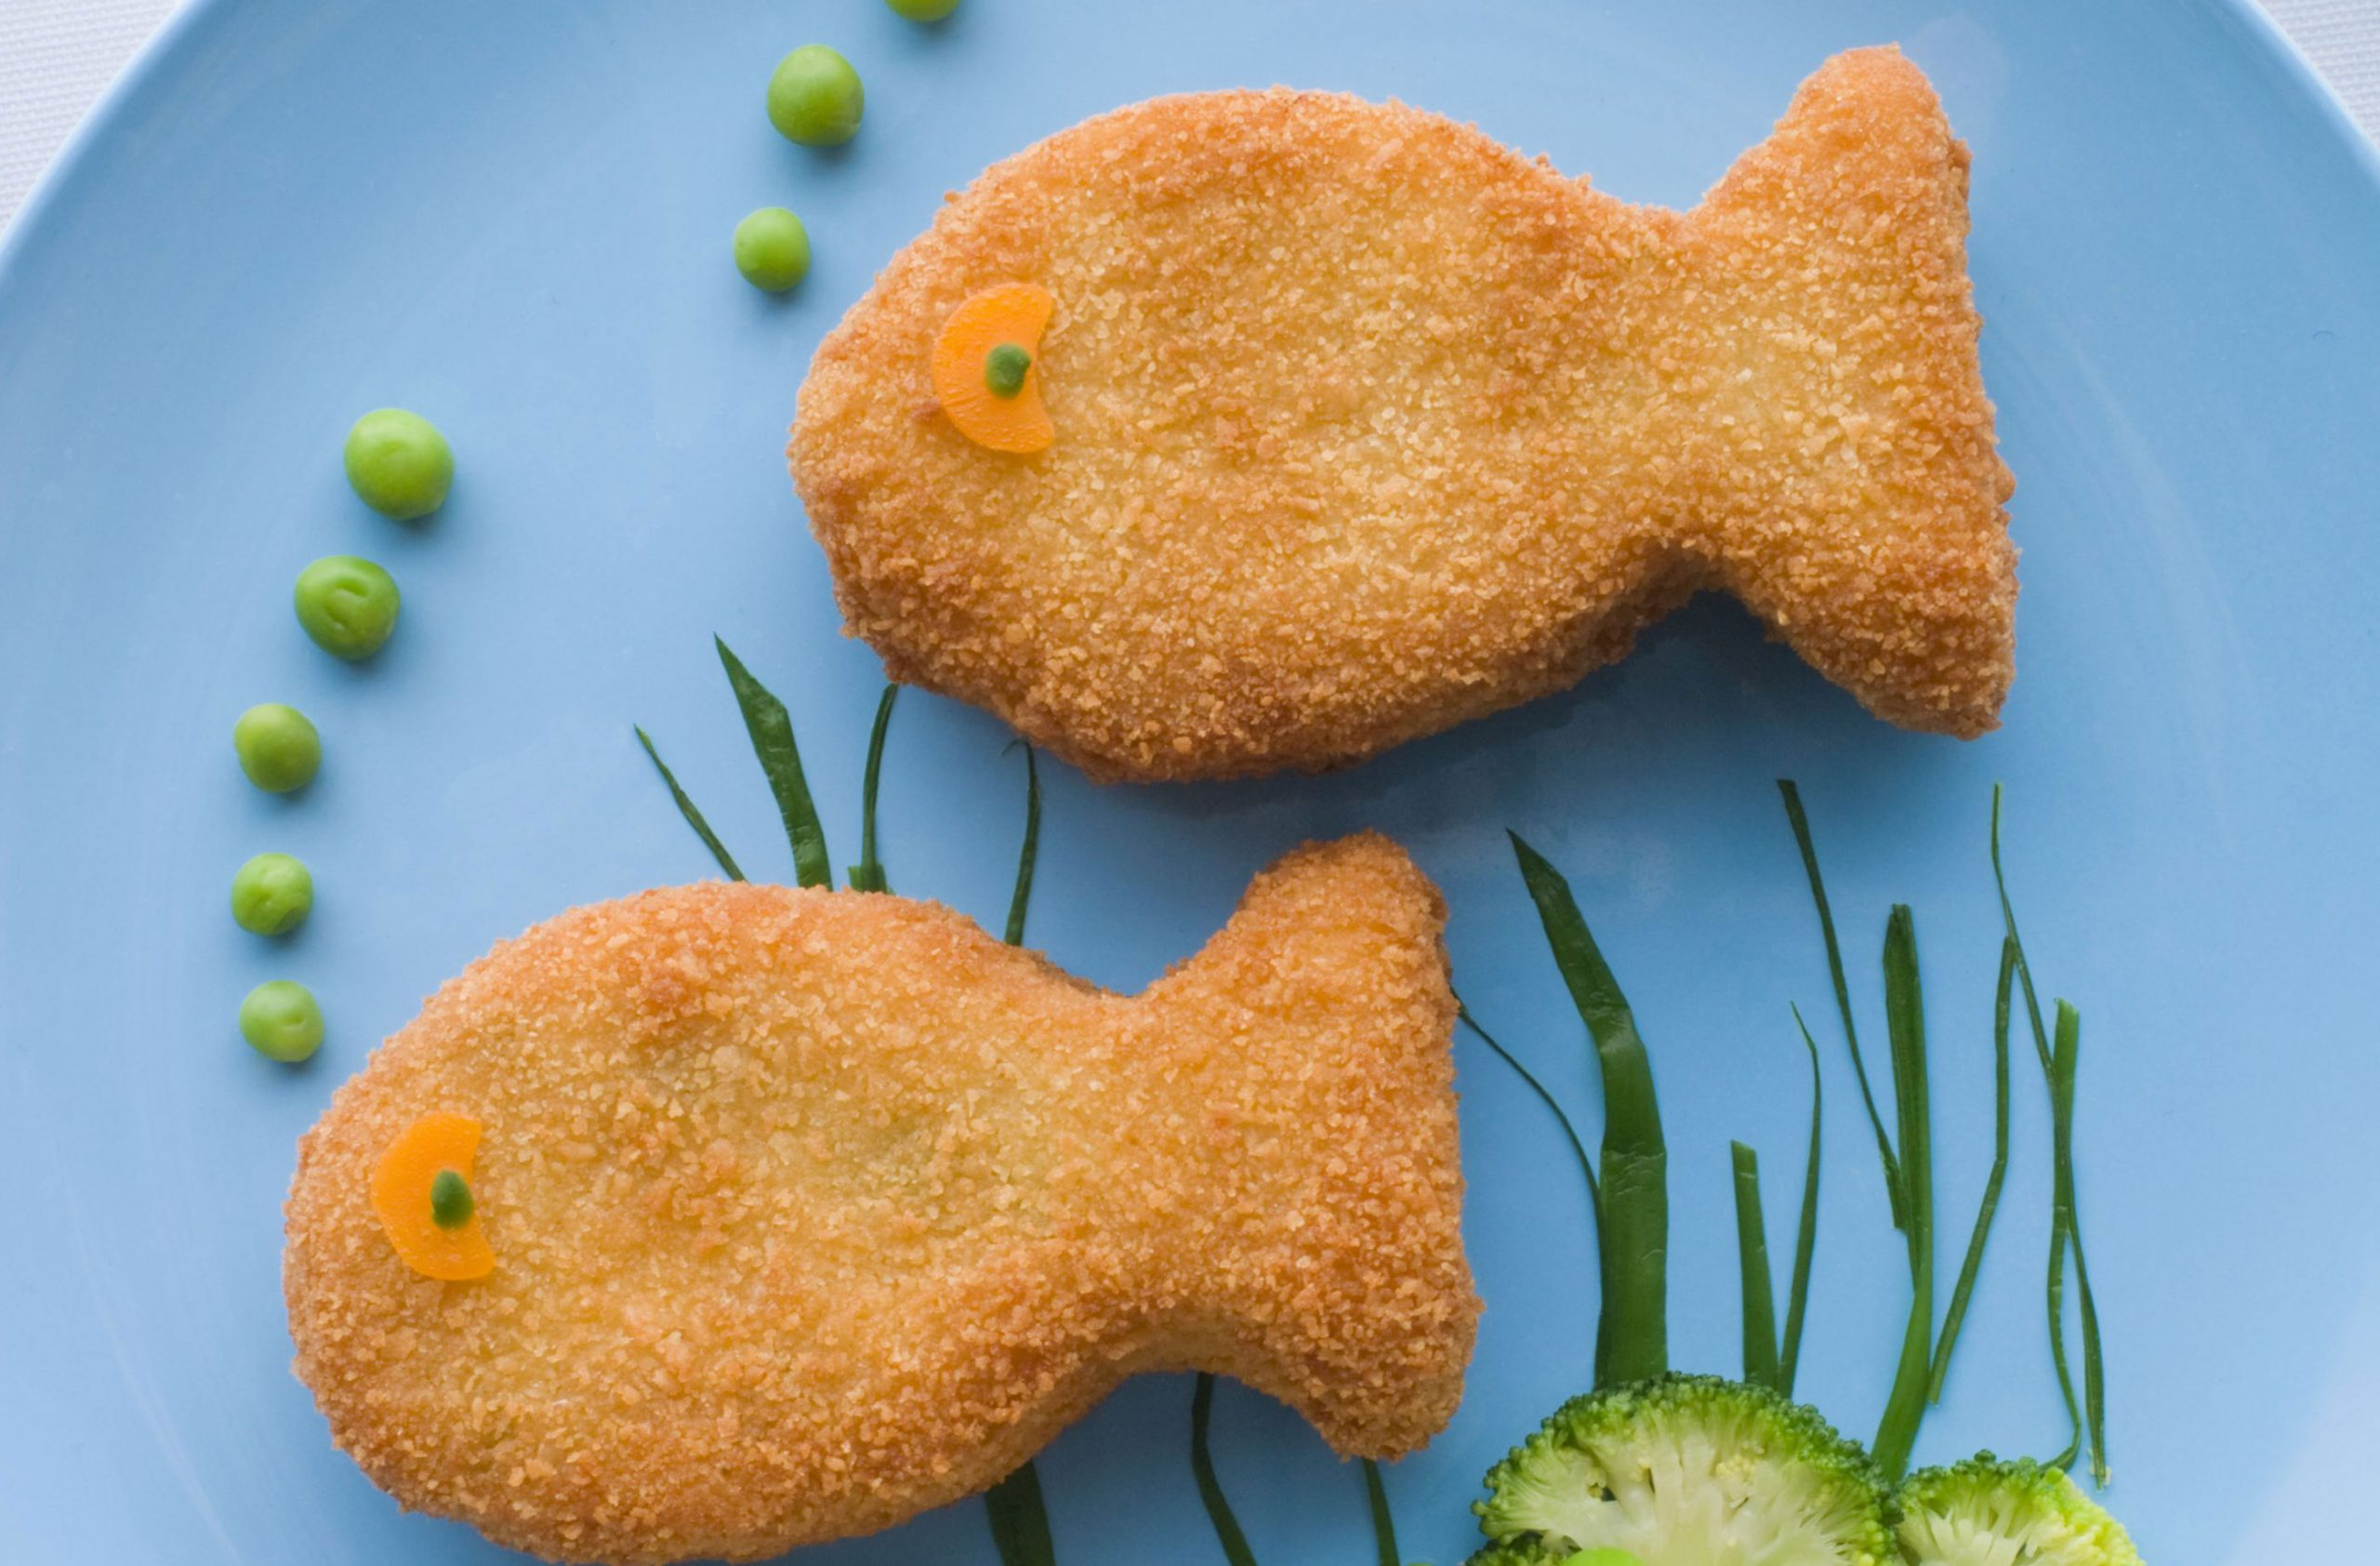 Get Kids to Eat More Fish: 10 Irresistible Fish Recipes Your Kids Will Love